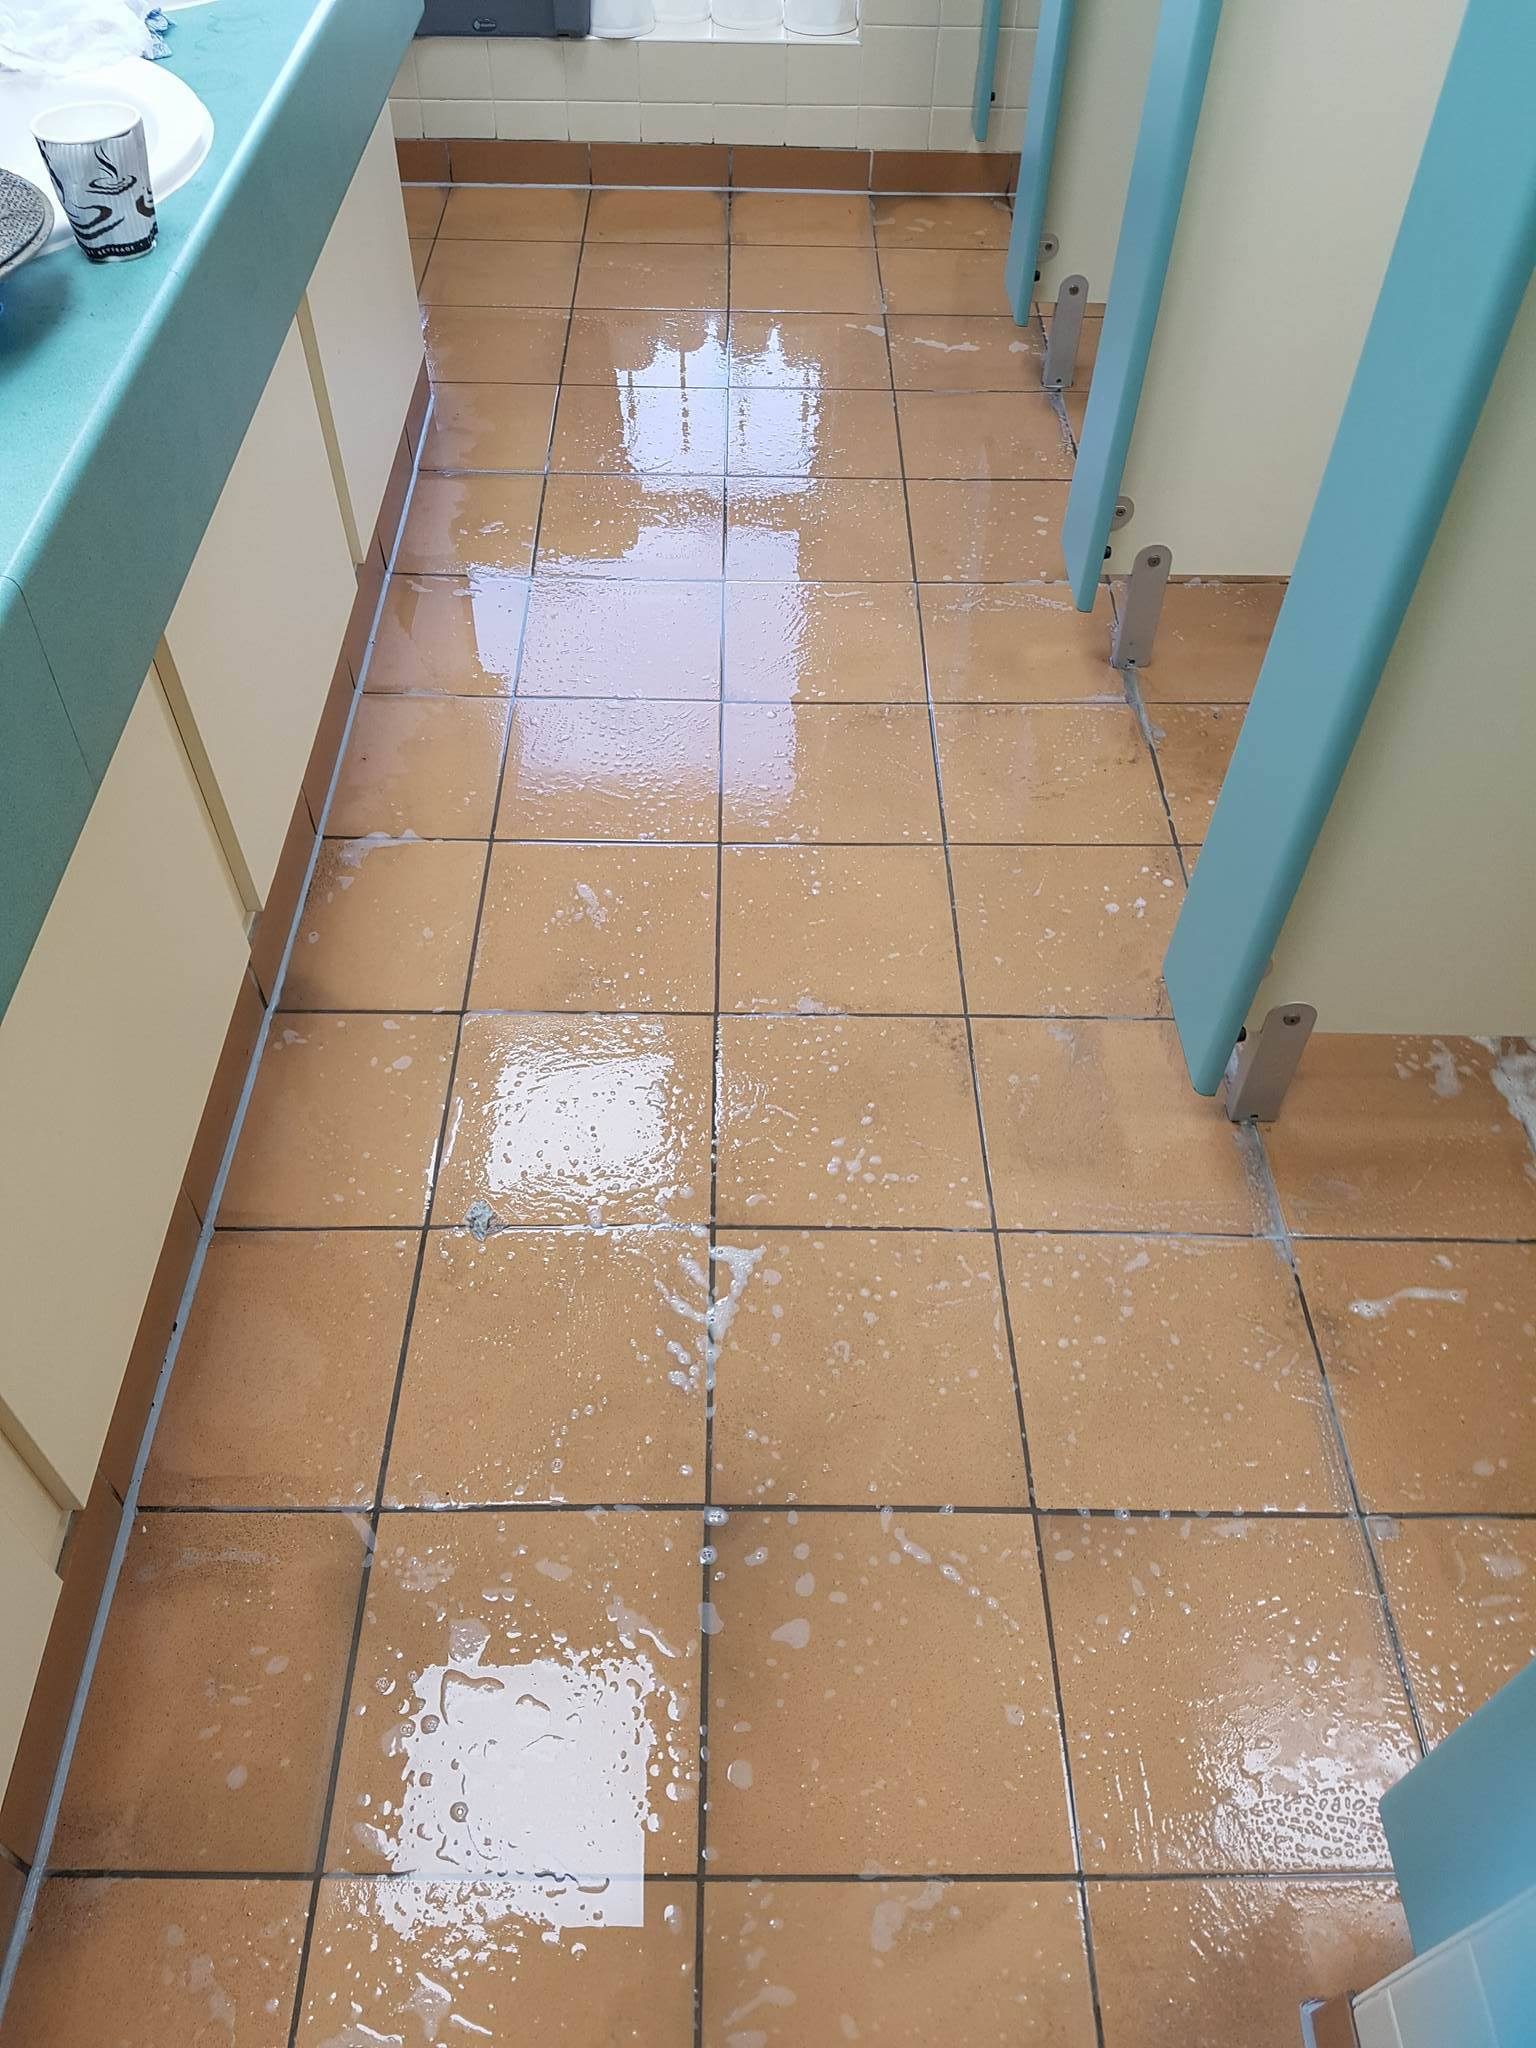 Ladies Toilet Floor at Corporate Offices During Cleaning